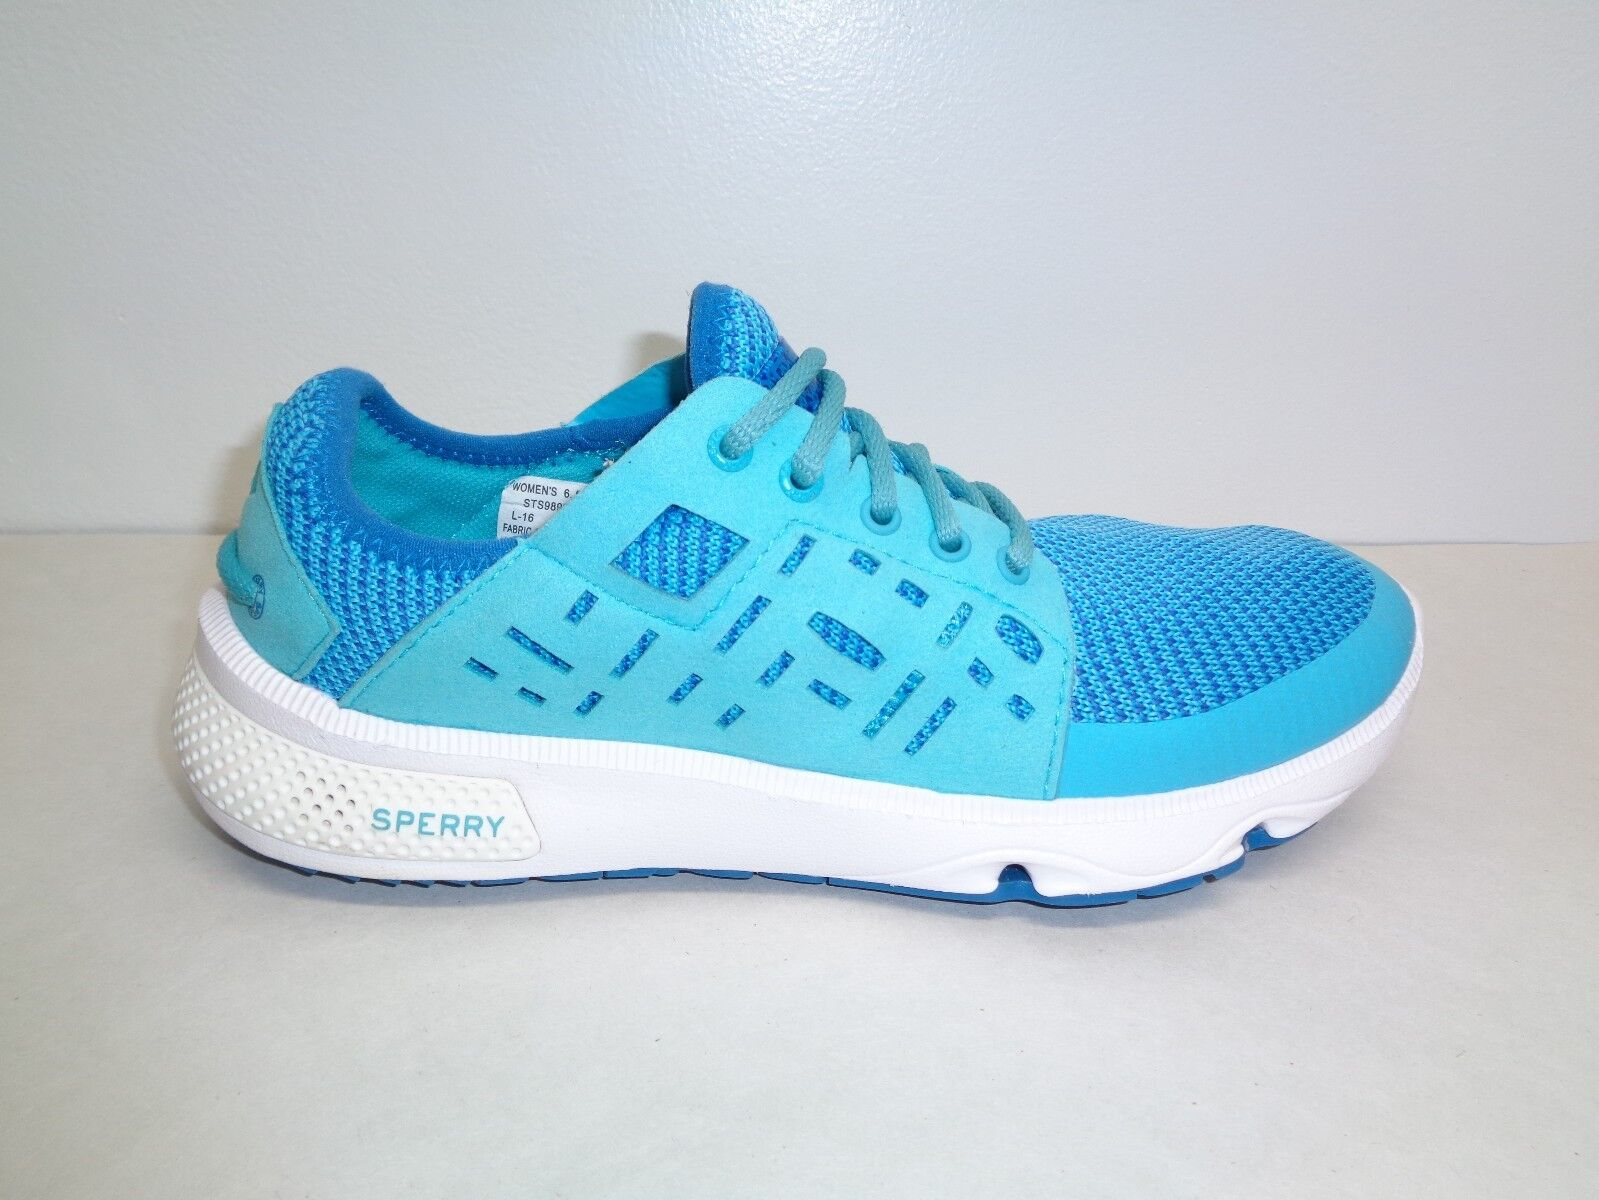 Sperry Size 6.5 M 7 SEAS SPORT bluee Water New New New Womens Lace Boat shoes Sneakers 756253